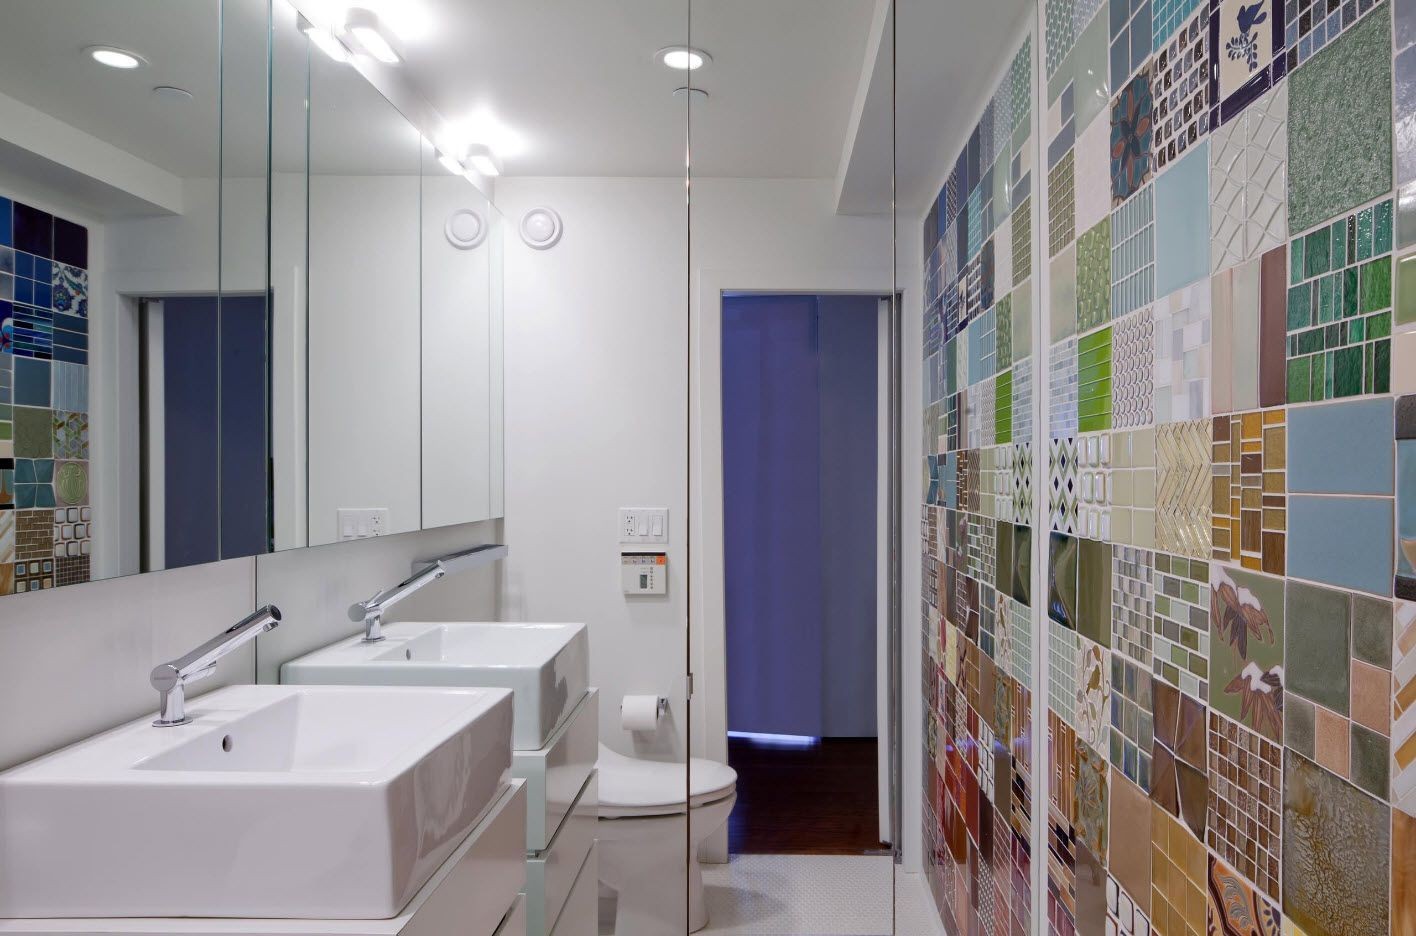 Birght accent wall as a mix of colorful tiles